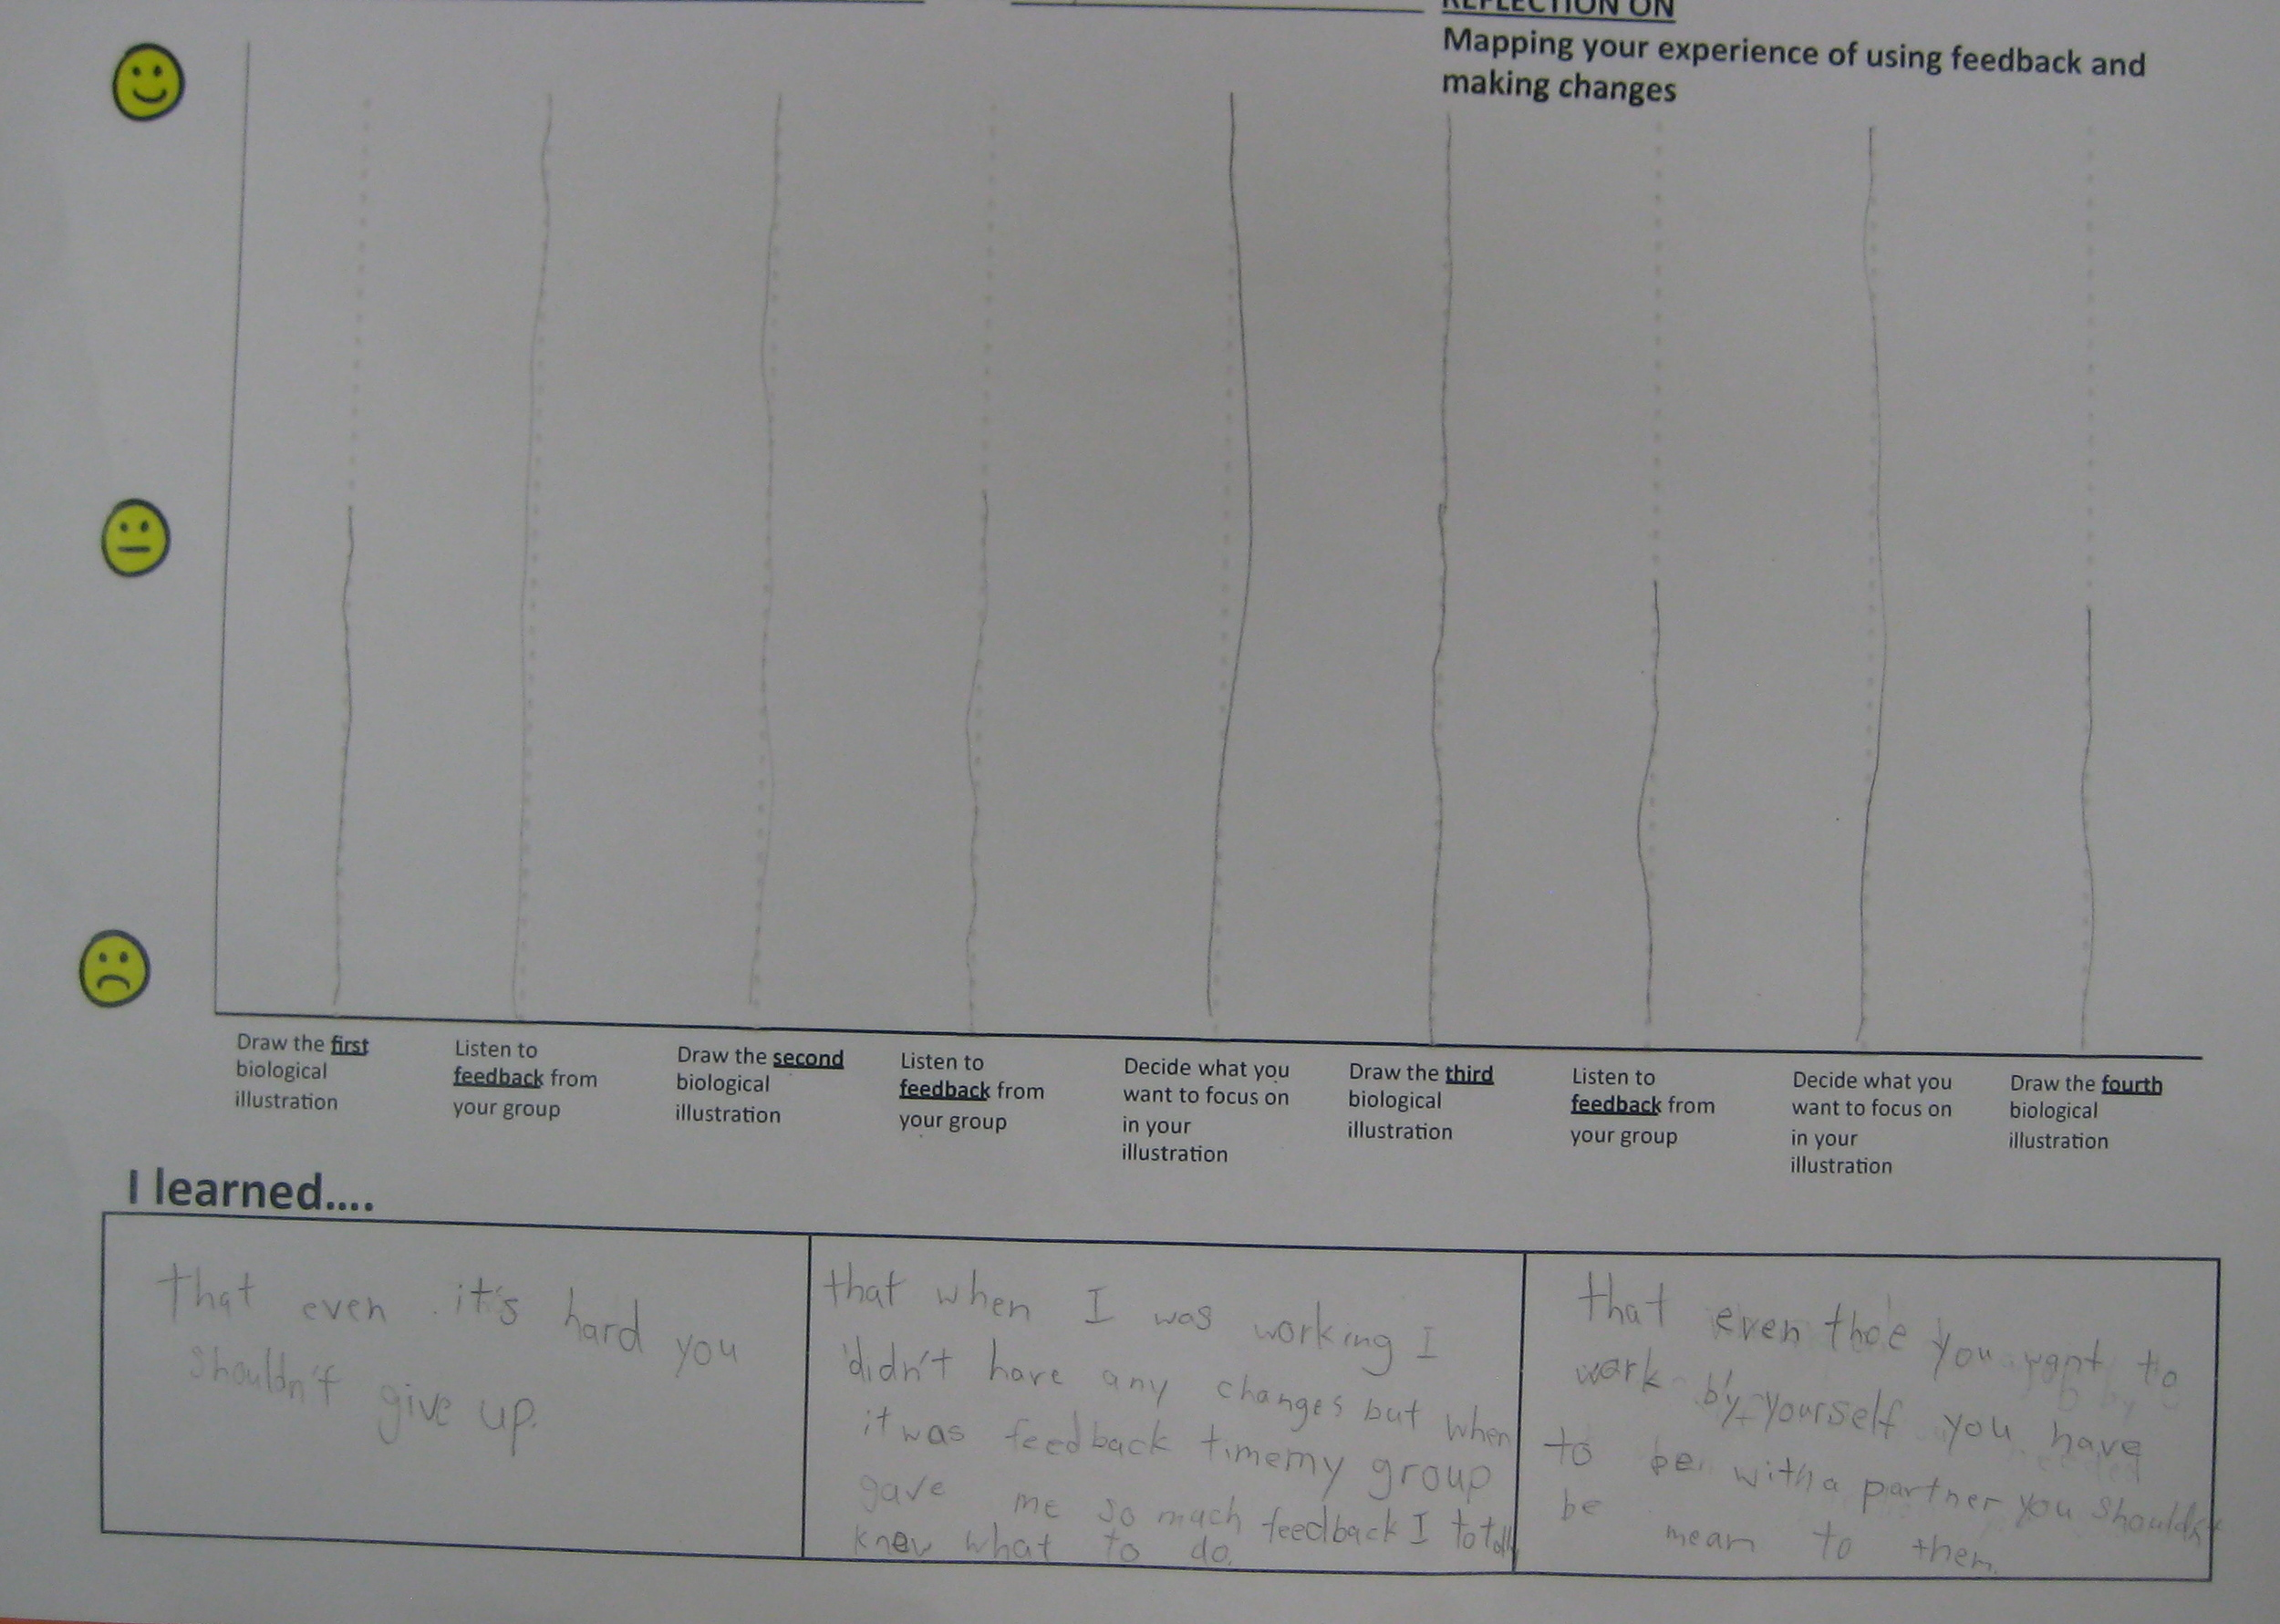 A sample reflection on using feedback